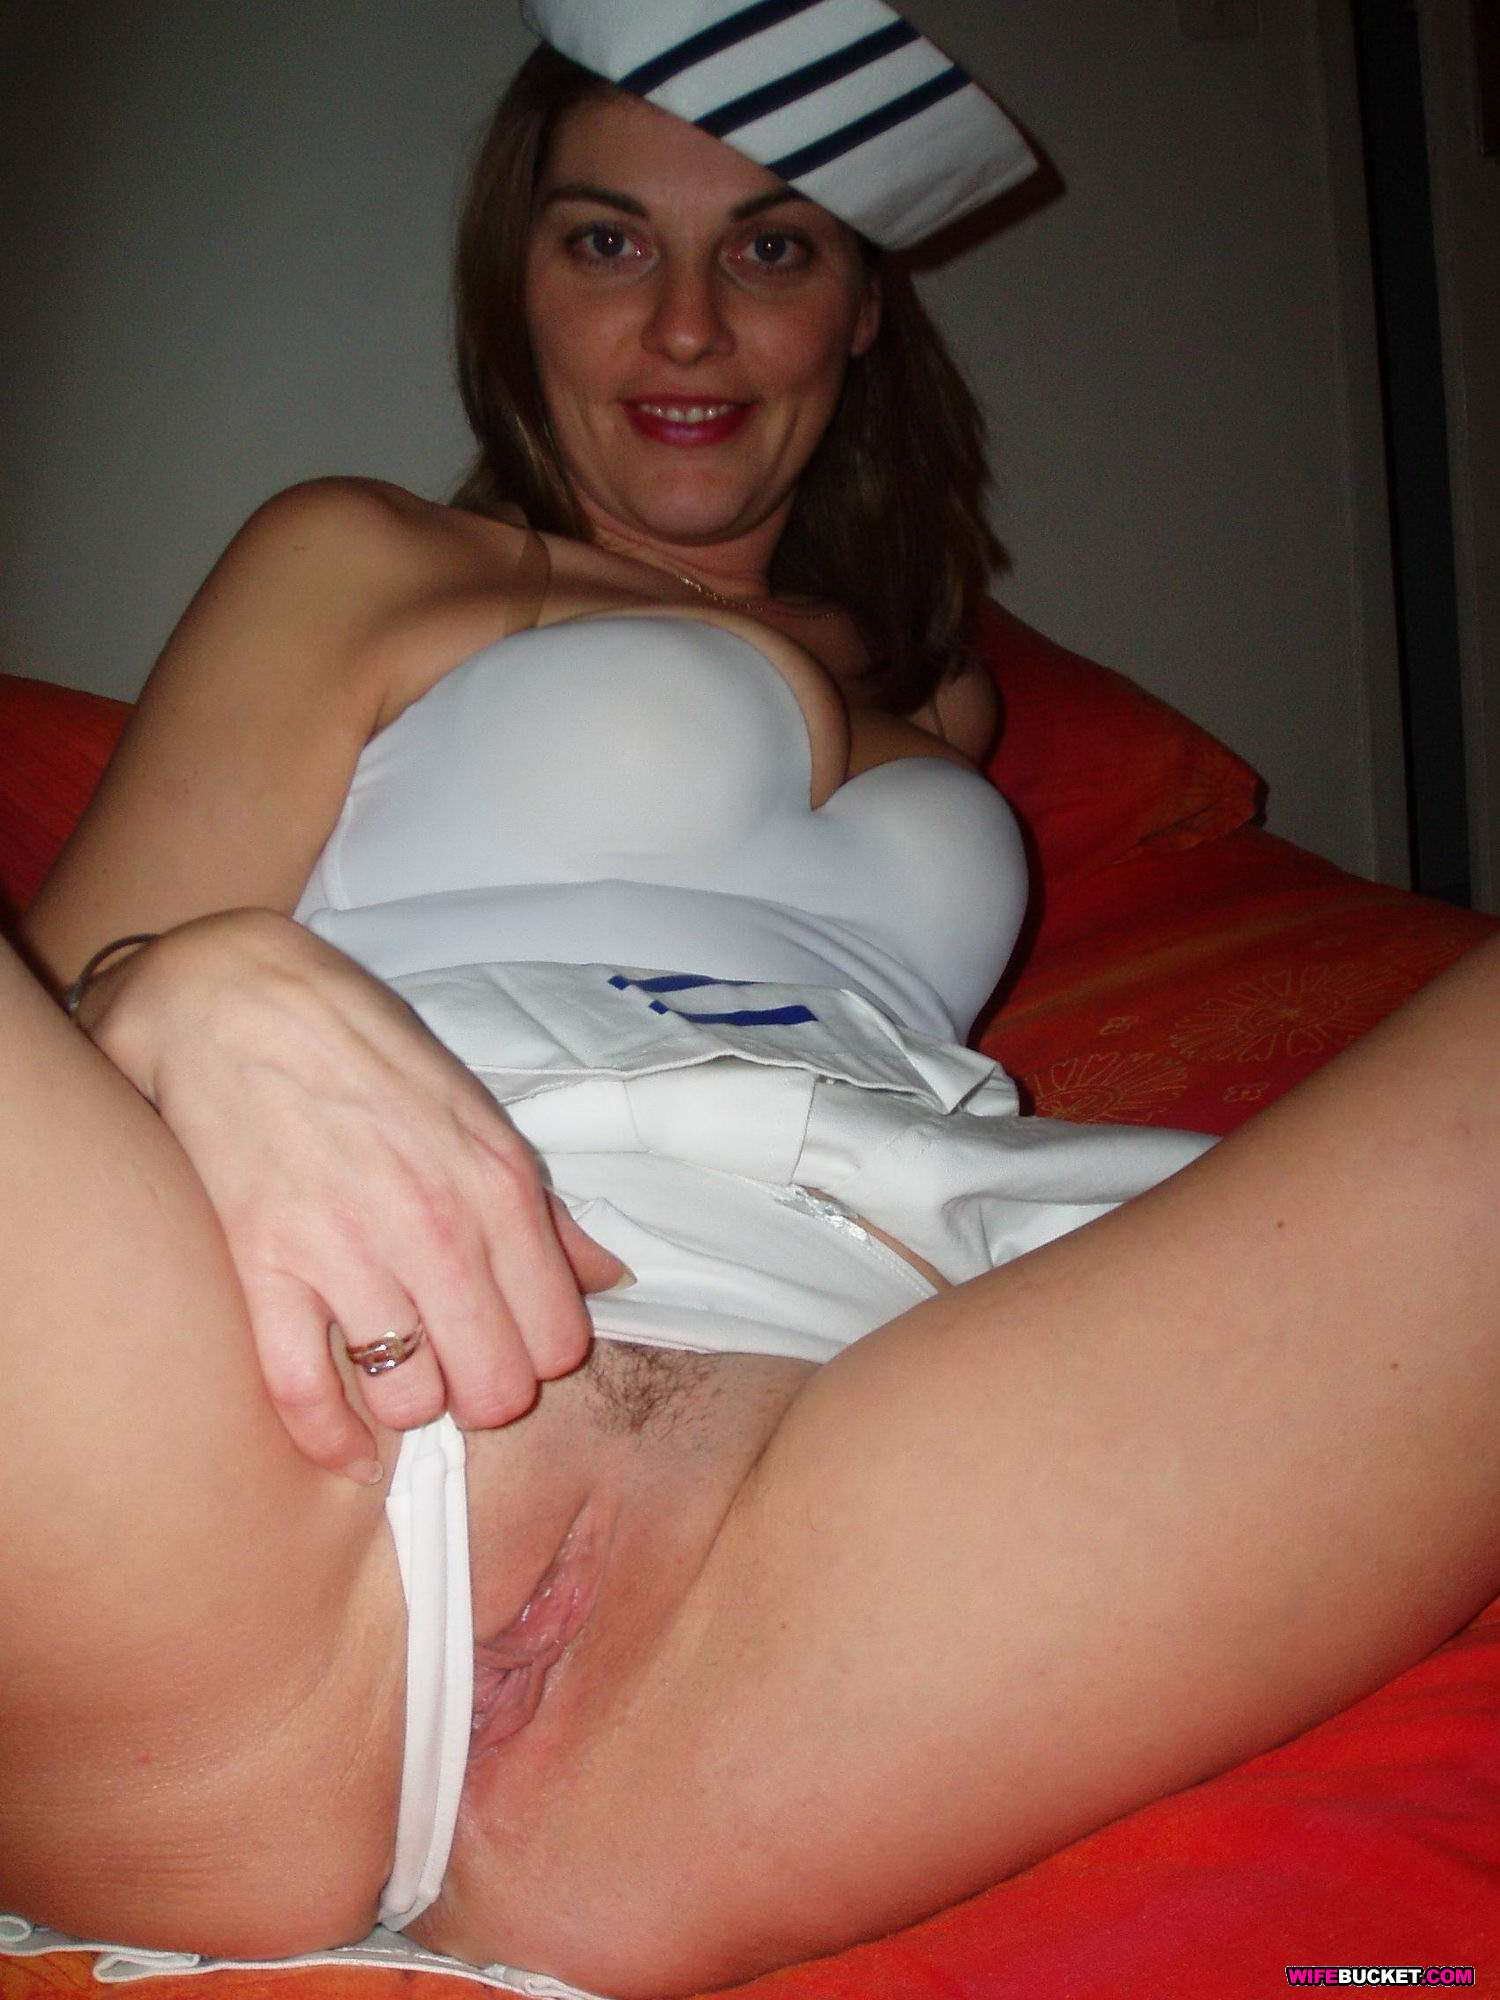 Milf wife sex pictures gallery you